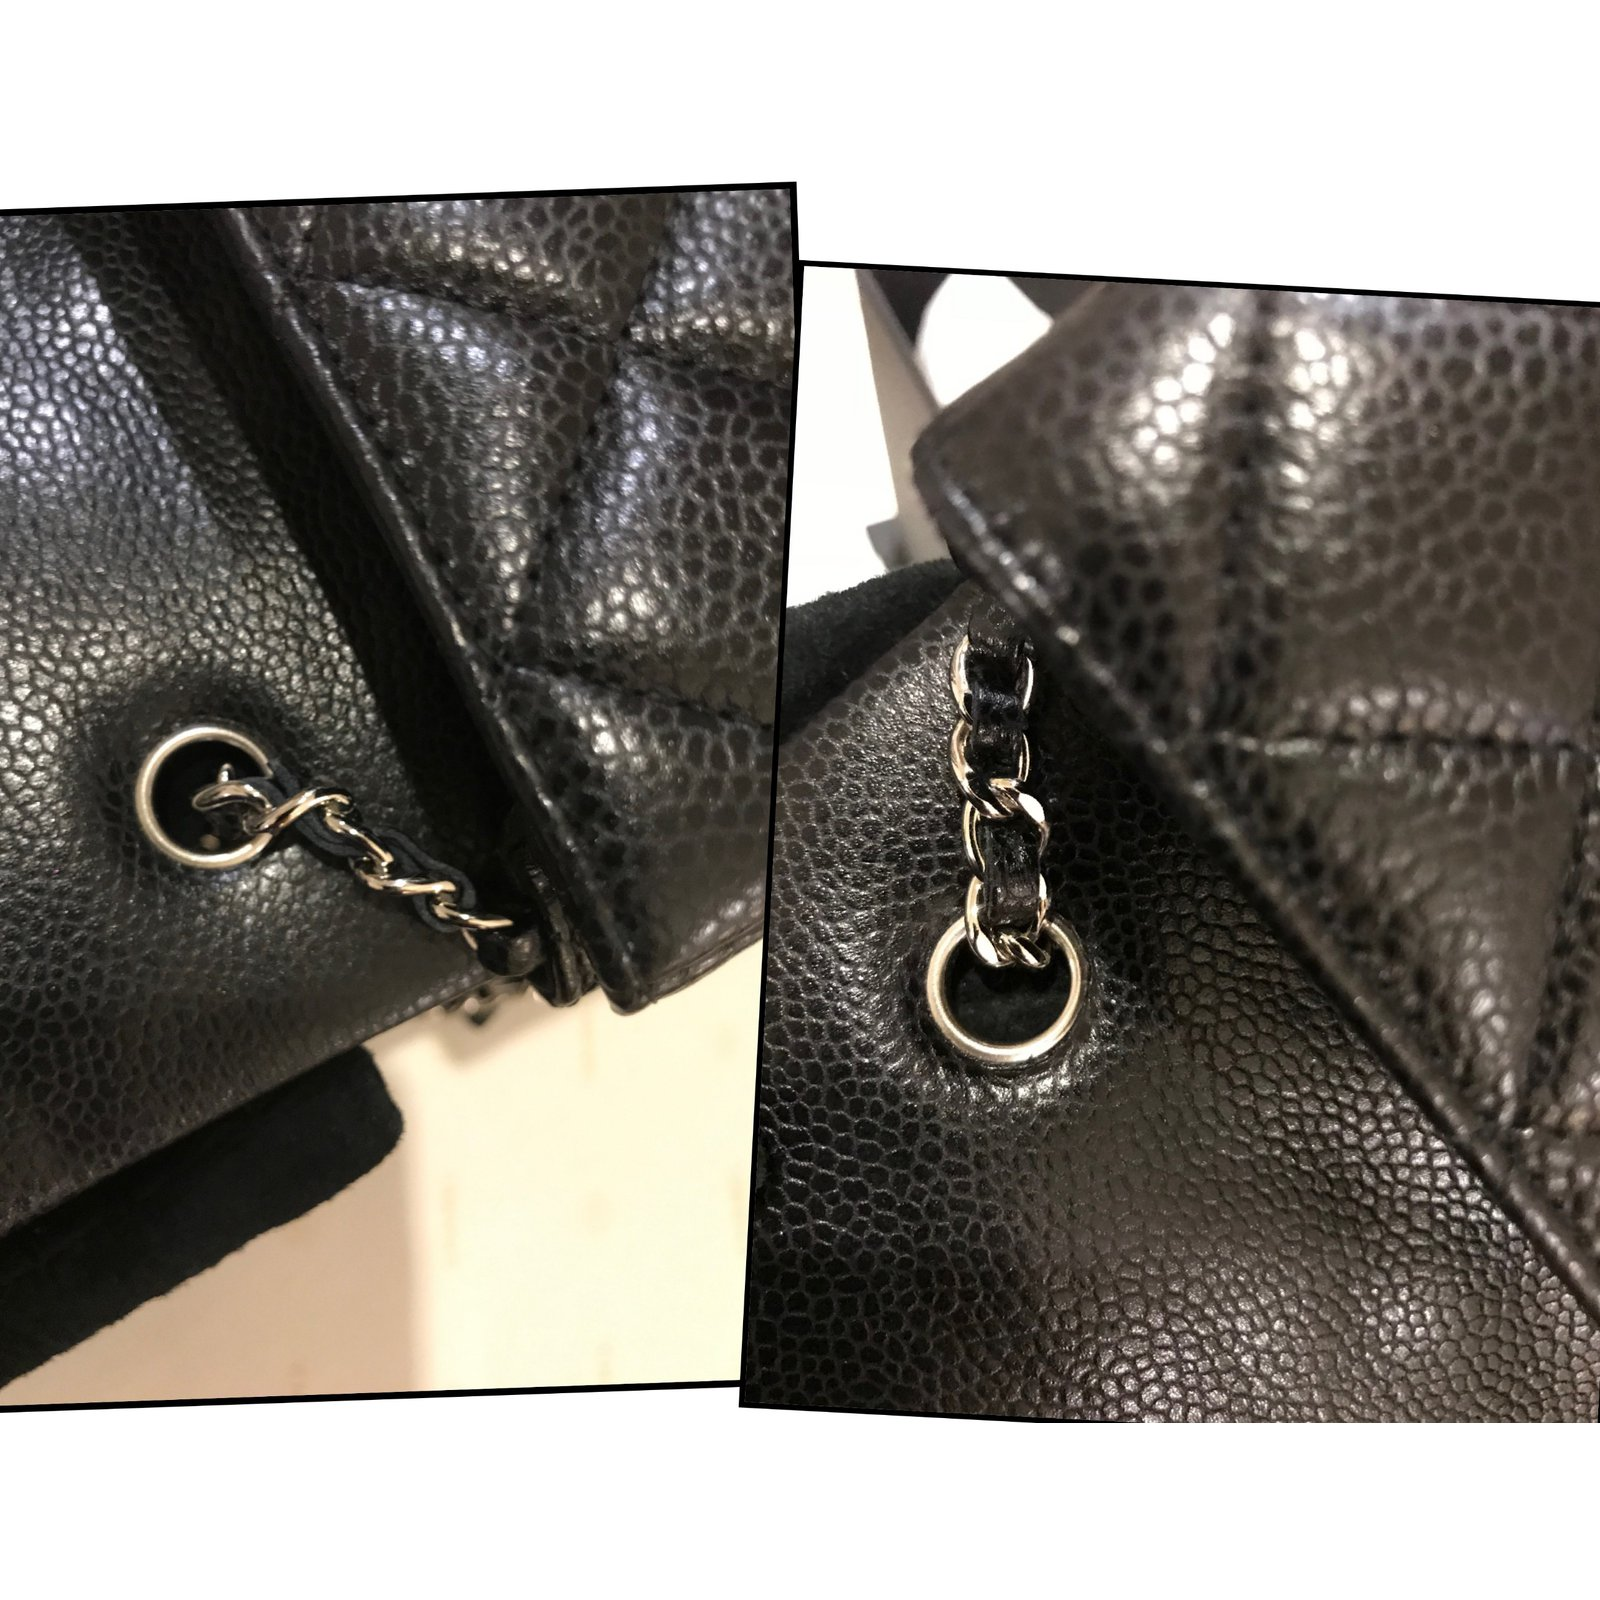 83401f473db4 Facebook · Pin This. Chanel extra mini classic flap bag in black caviar  leather with silver hw Handbags Leather Black